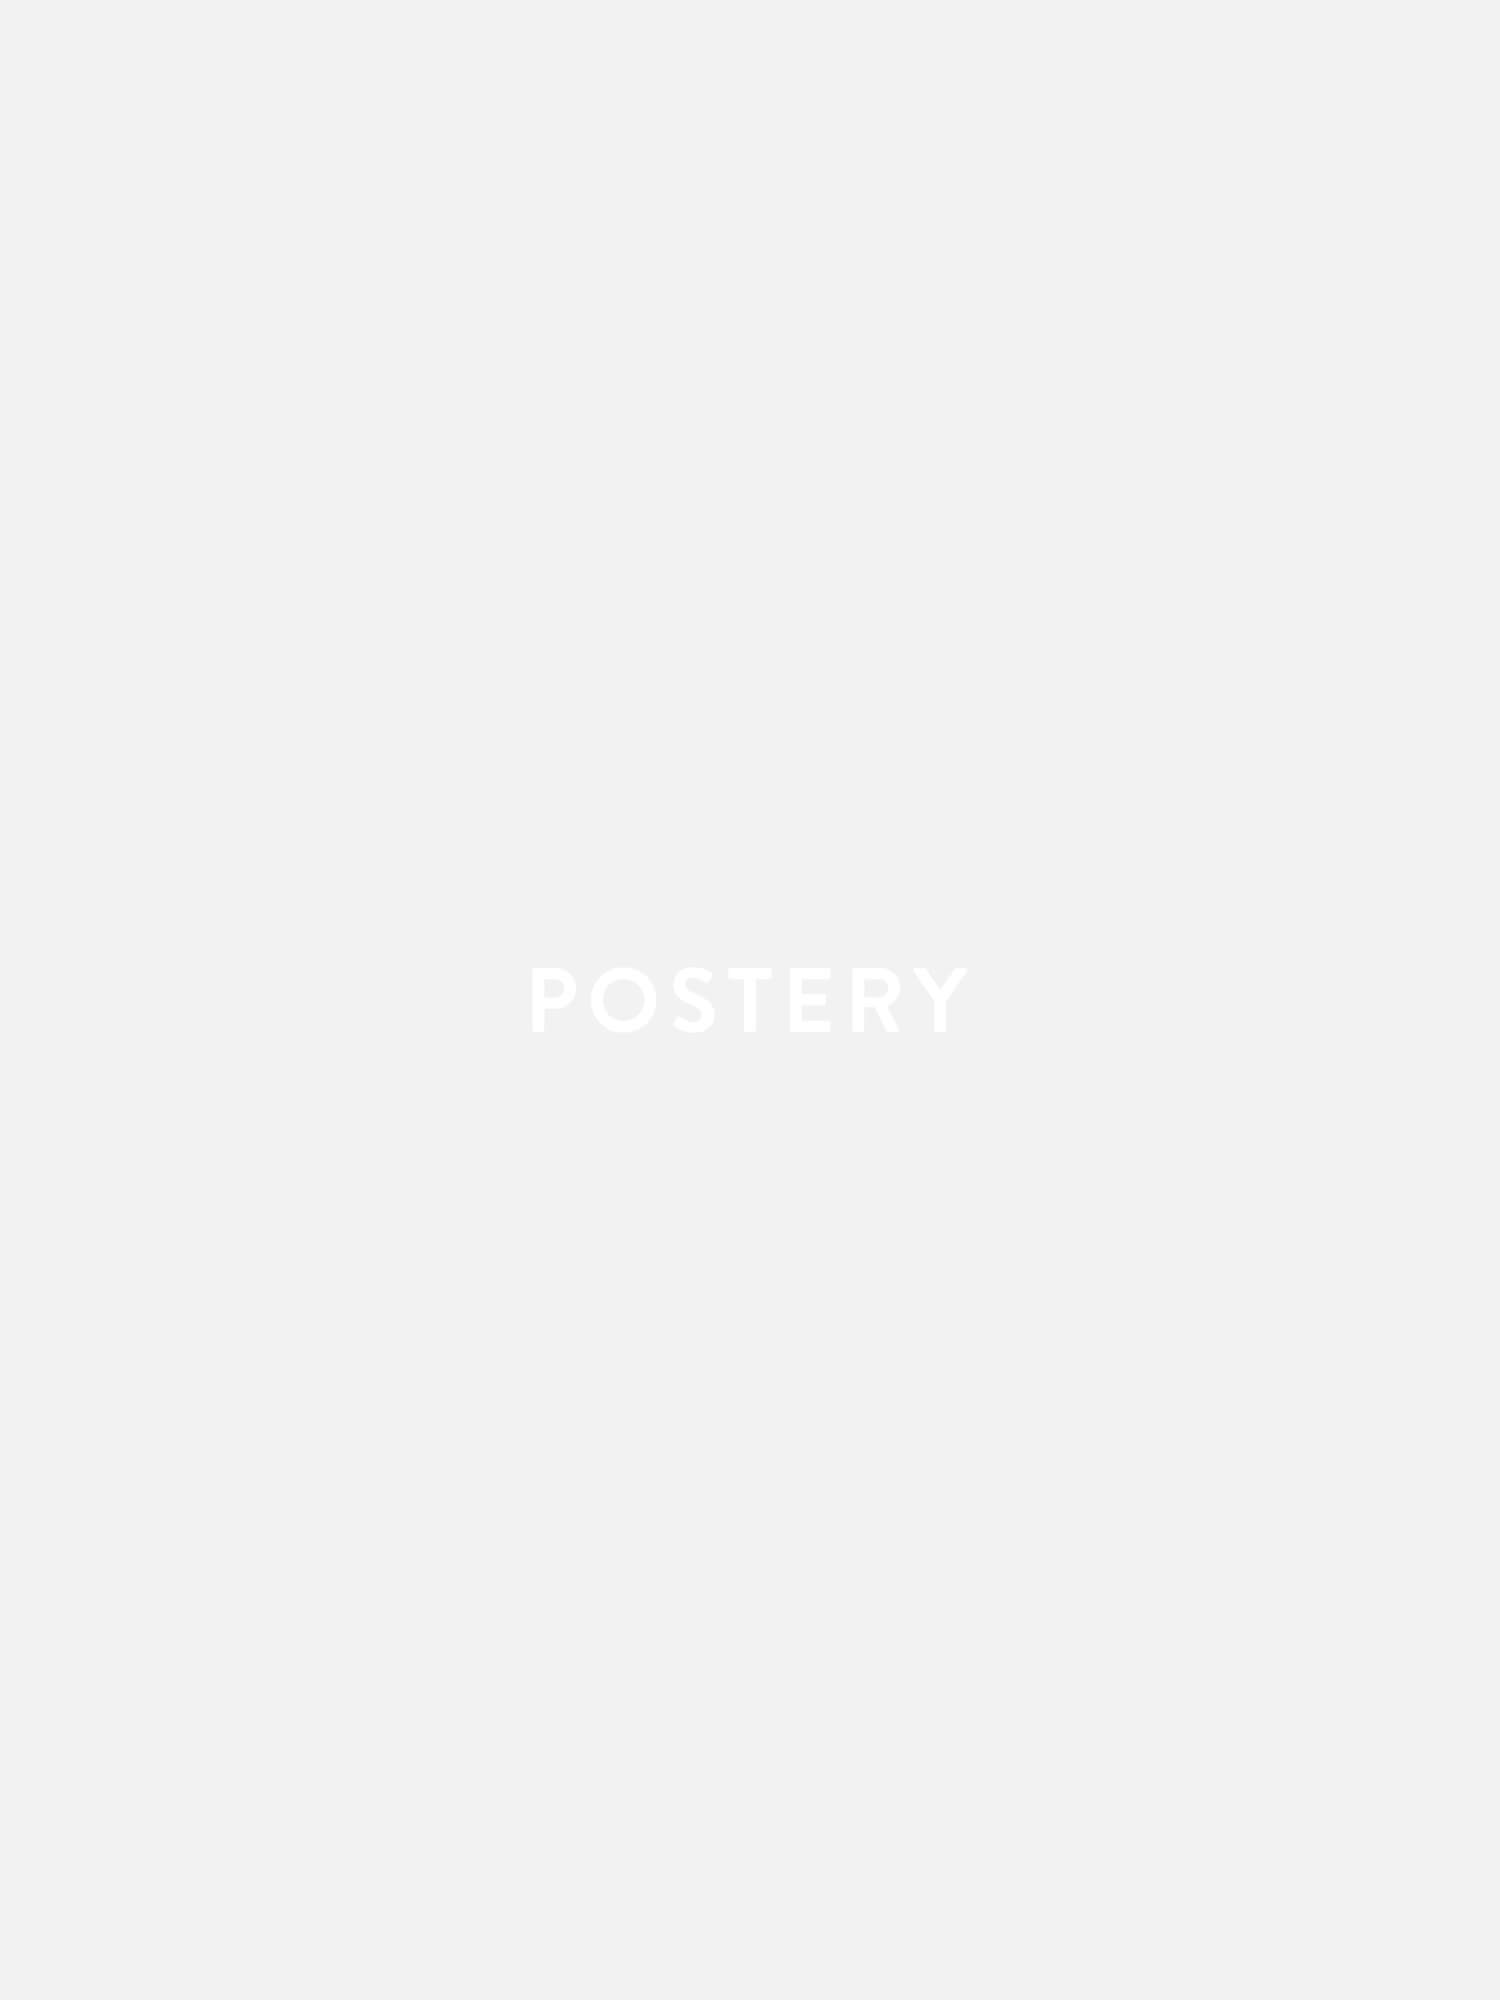 Teddy With Balloon Poster